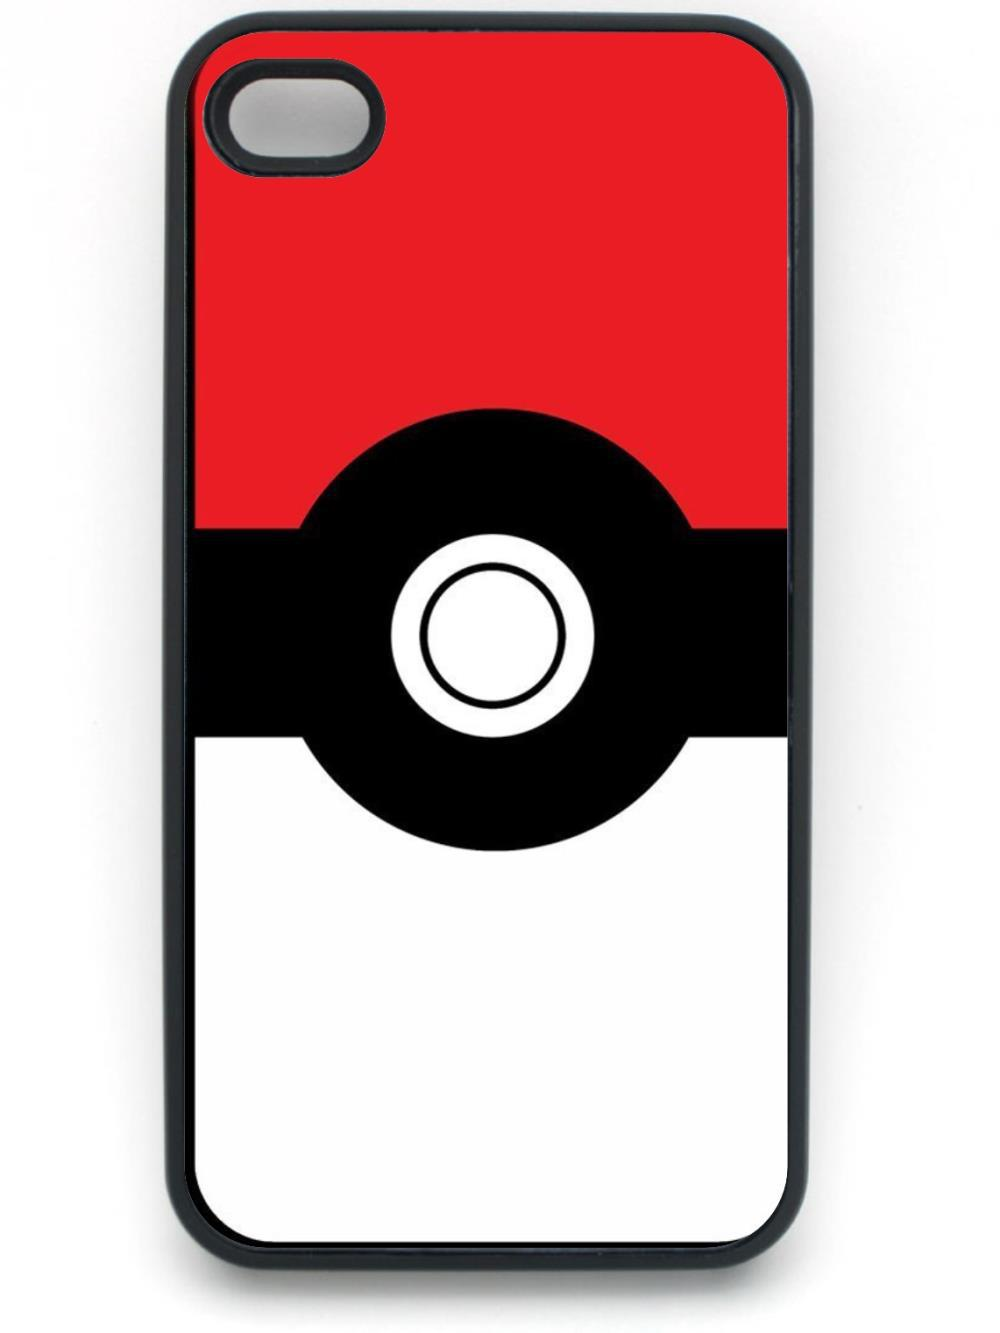 premium selection 72a20 cfdb6 US $9.98 |Pokemon Pokedex Phone Case for iPhone 4 5s 5c 6 6s Plus iPod  Touch 4 5 6 Samsung Galaxy s2 s3 s4 s5 mini s6 s7 Edge Note 2 3 4 5 on ...